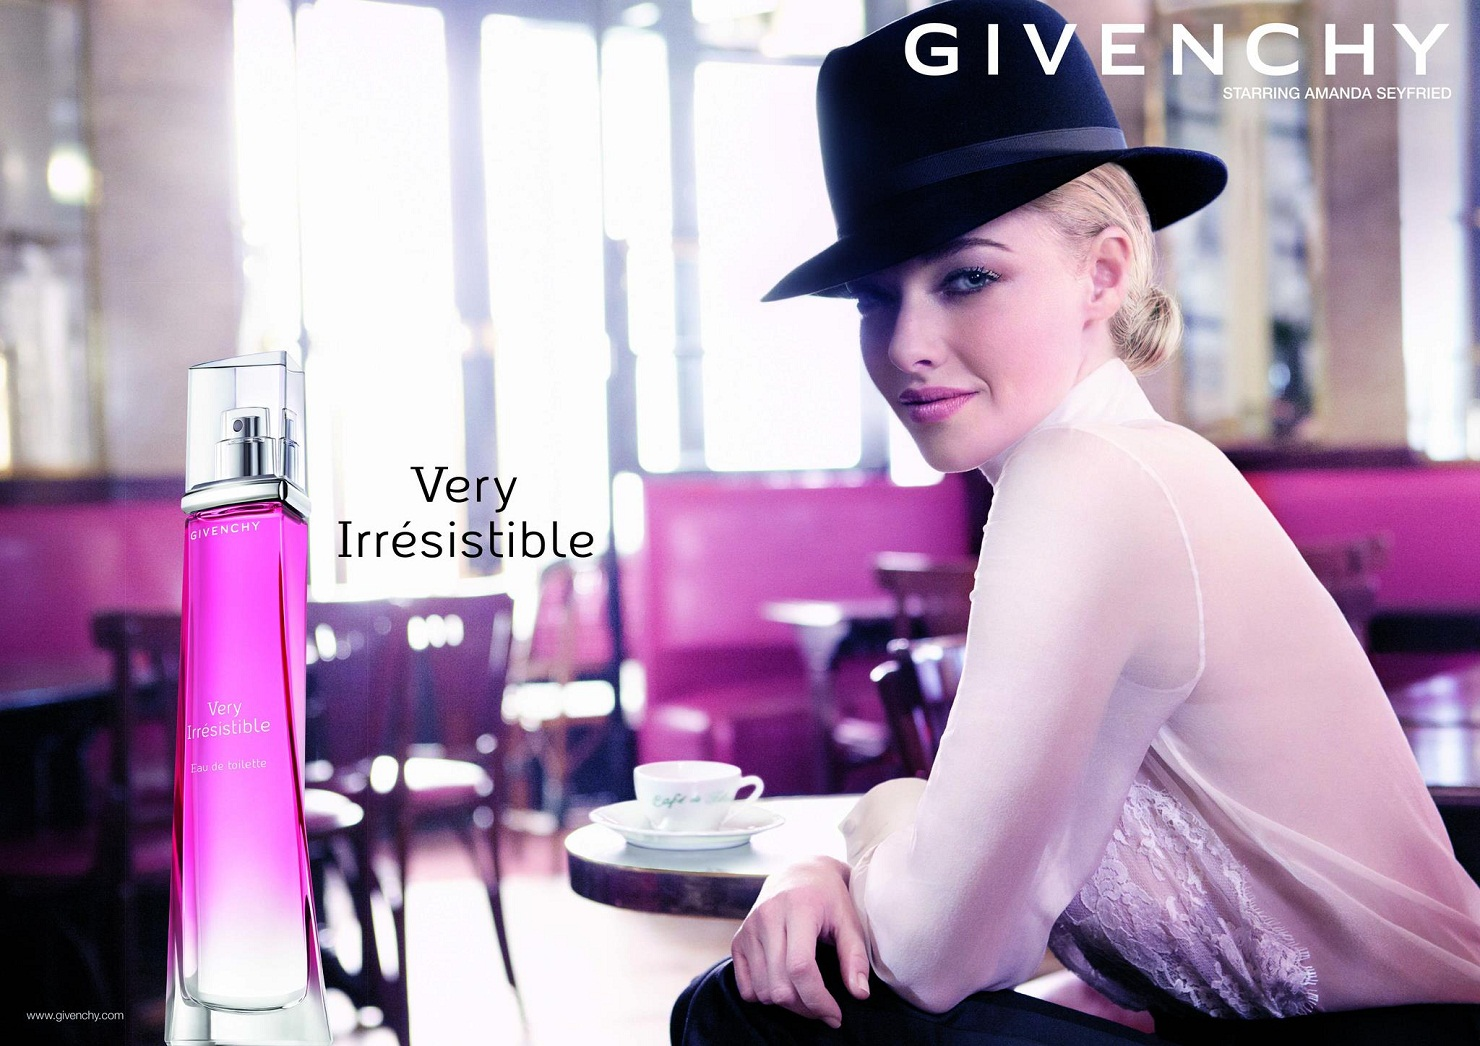 Givenchy Seyfried